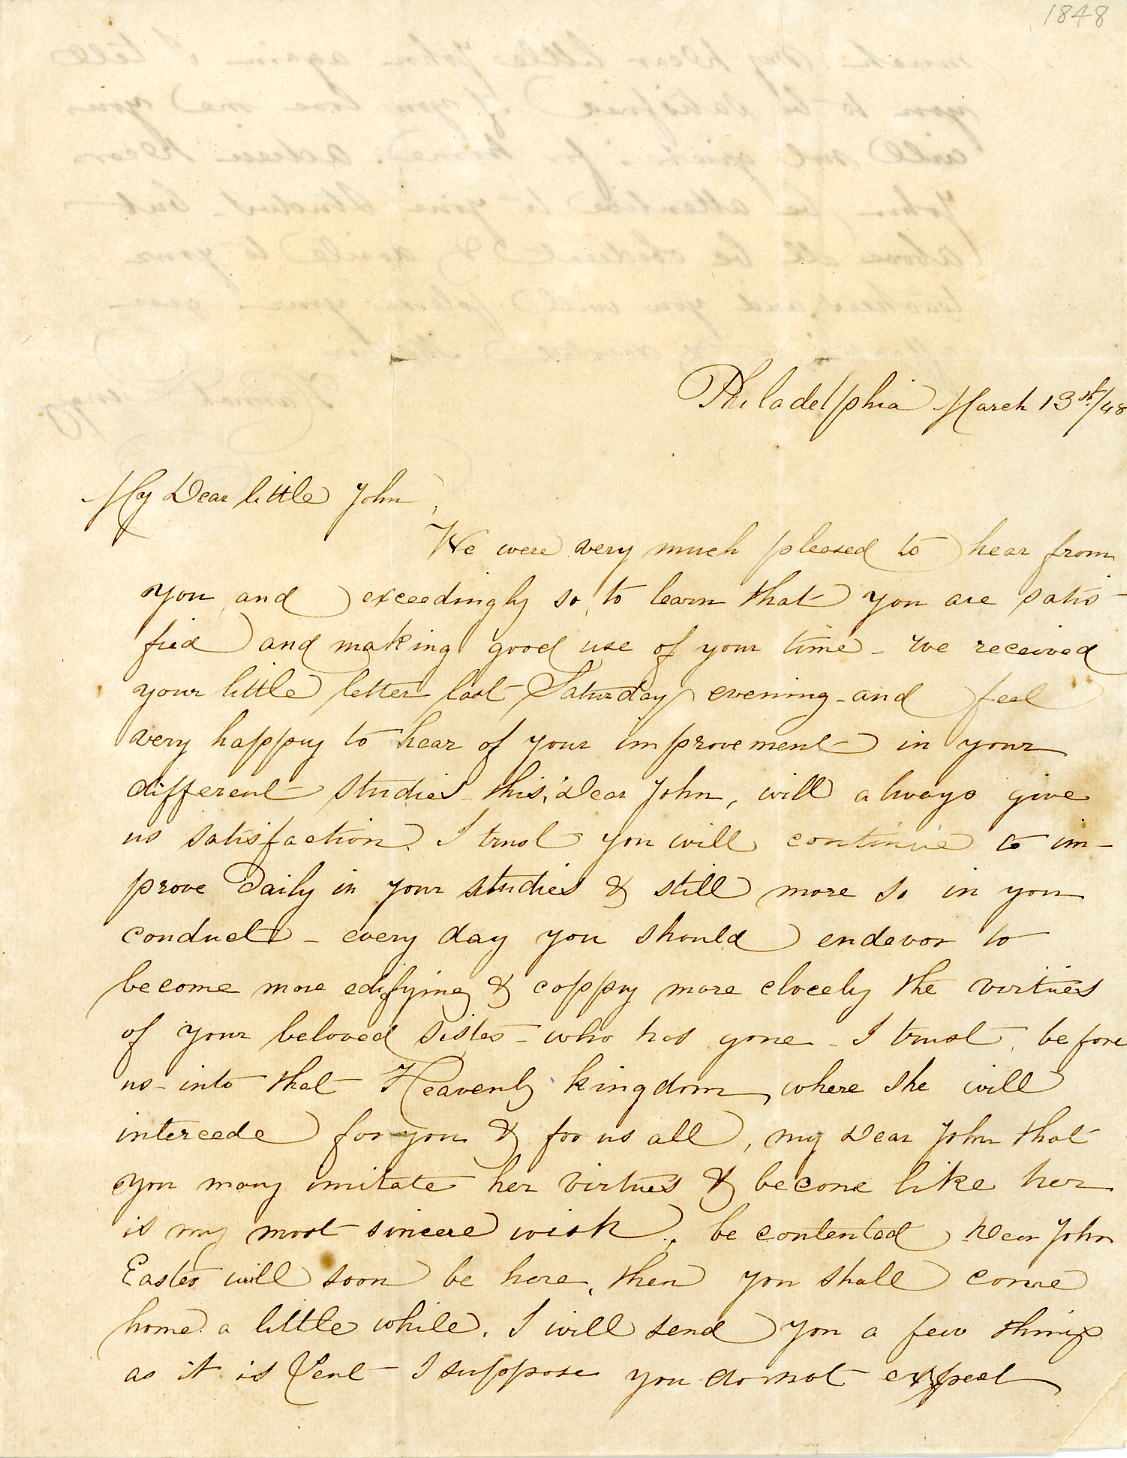 Letter dated 13 March 1848.